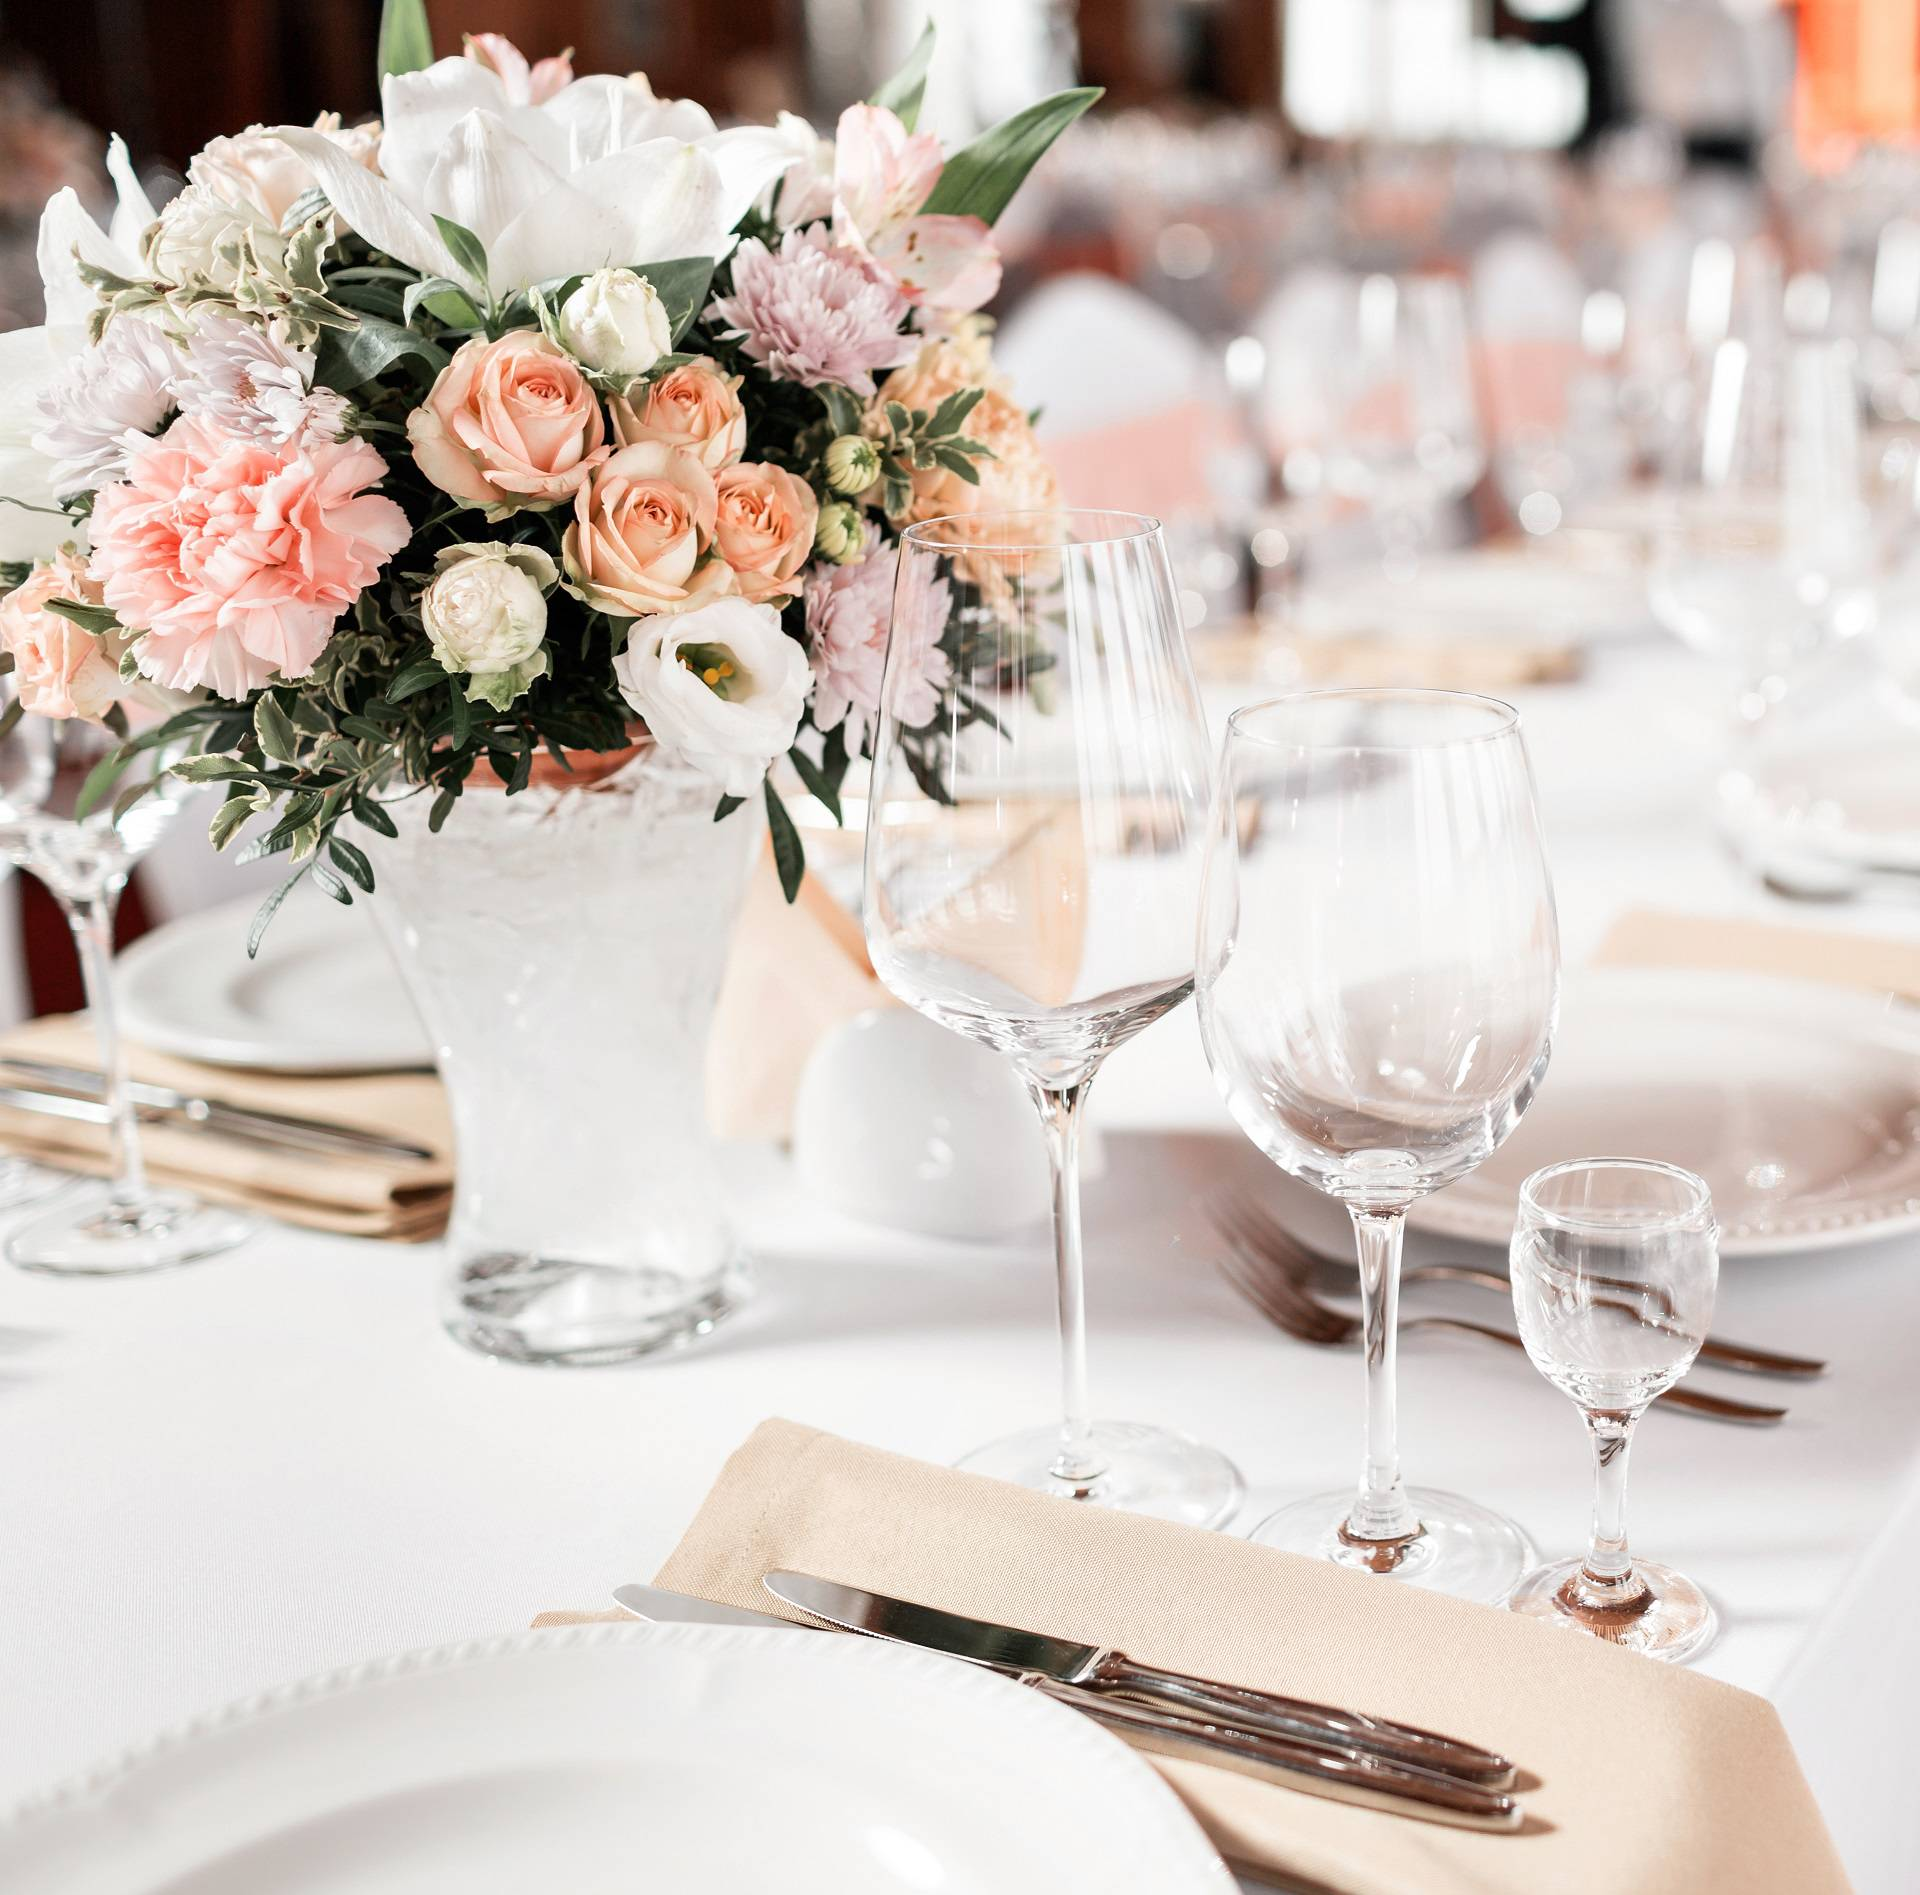 Tables set for an event party or wedding reception. luxury elegant table setting dinner in a restaurant. glasses and dishes.